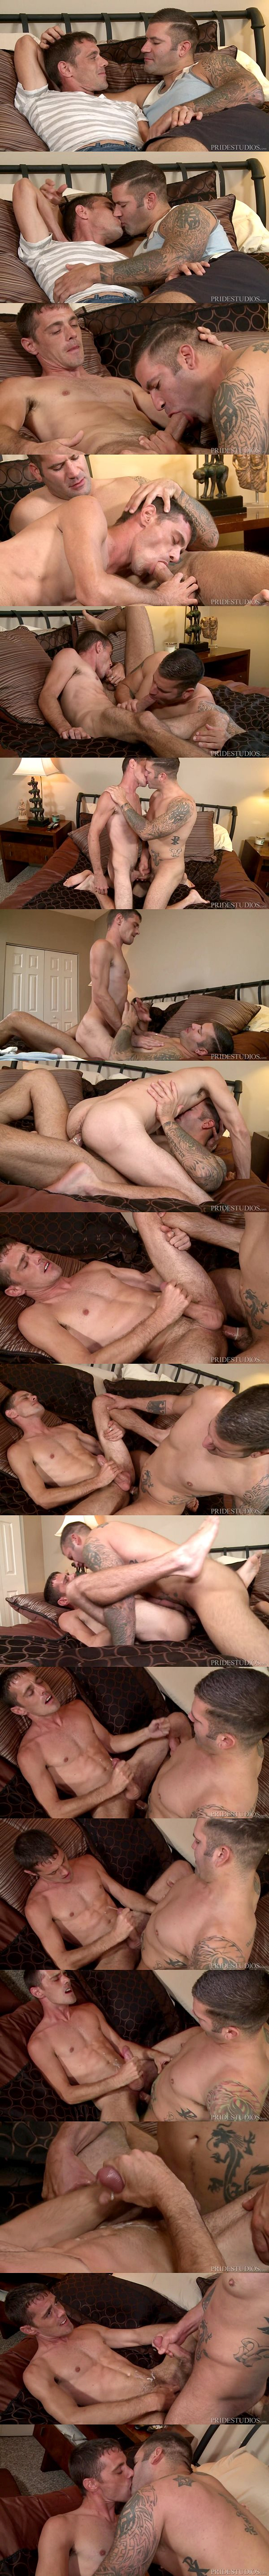 Caleb Troy pops Brett Bradley's tight virgin ass before he fucks the cum out of Brett at Extrabigdicks 02